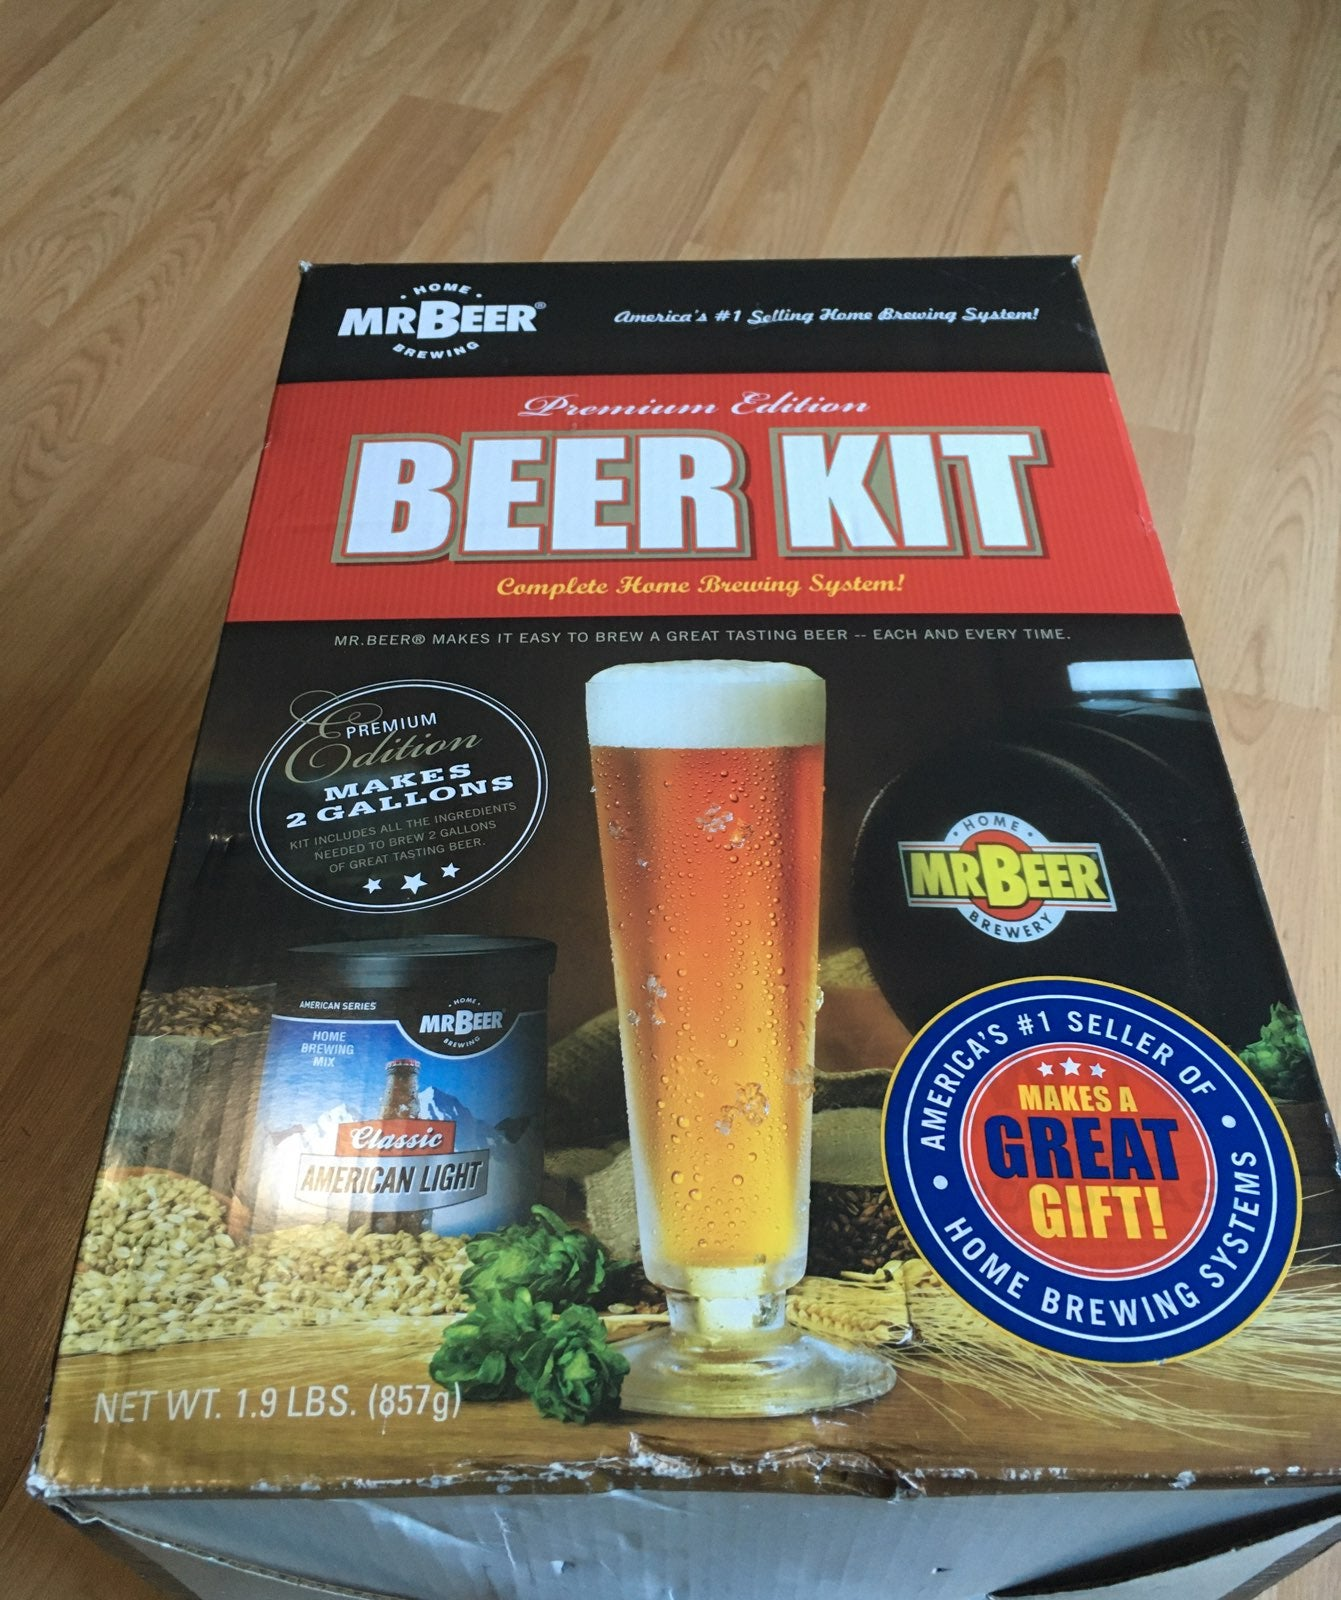 Complete home brewing system